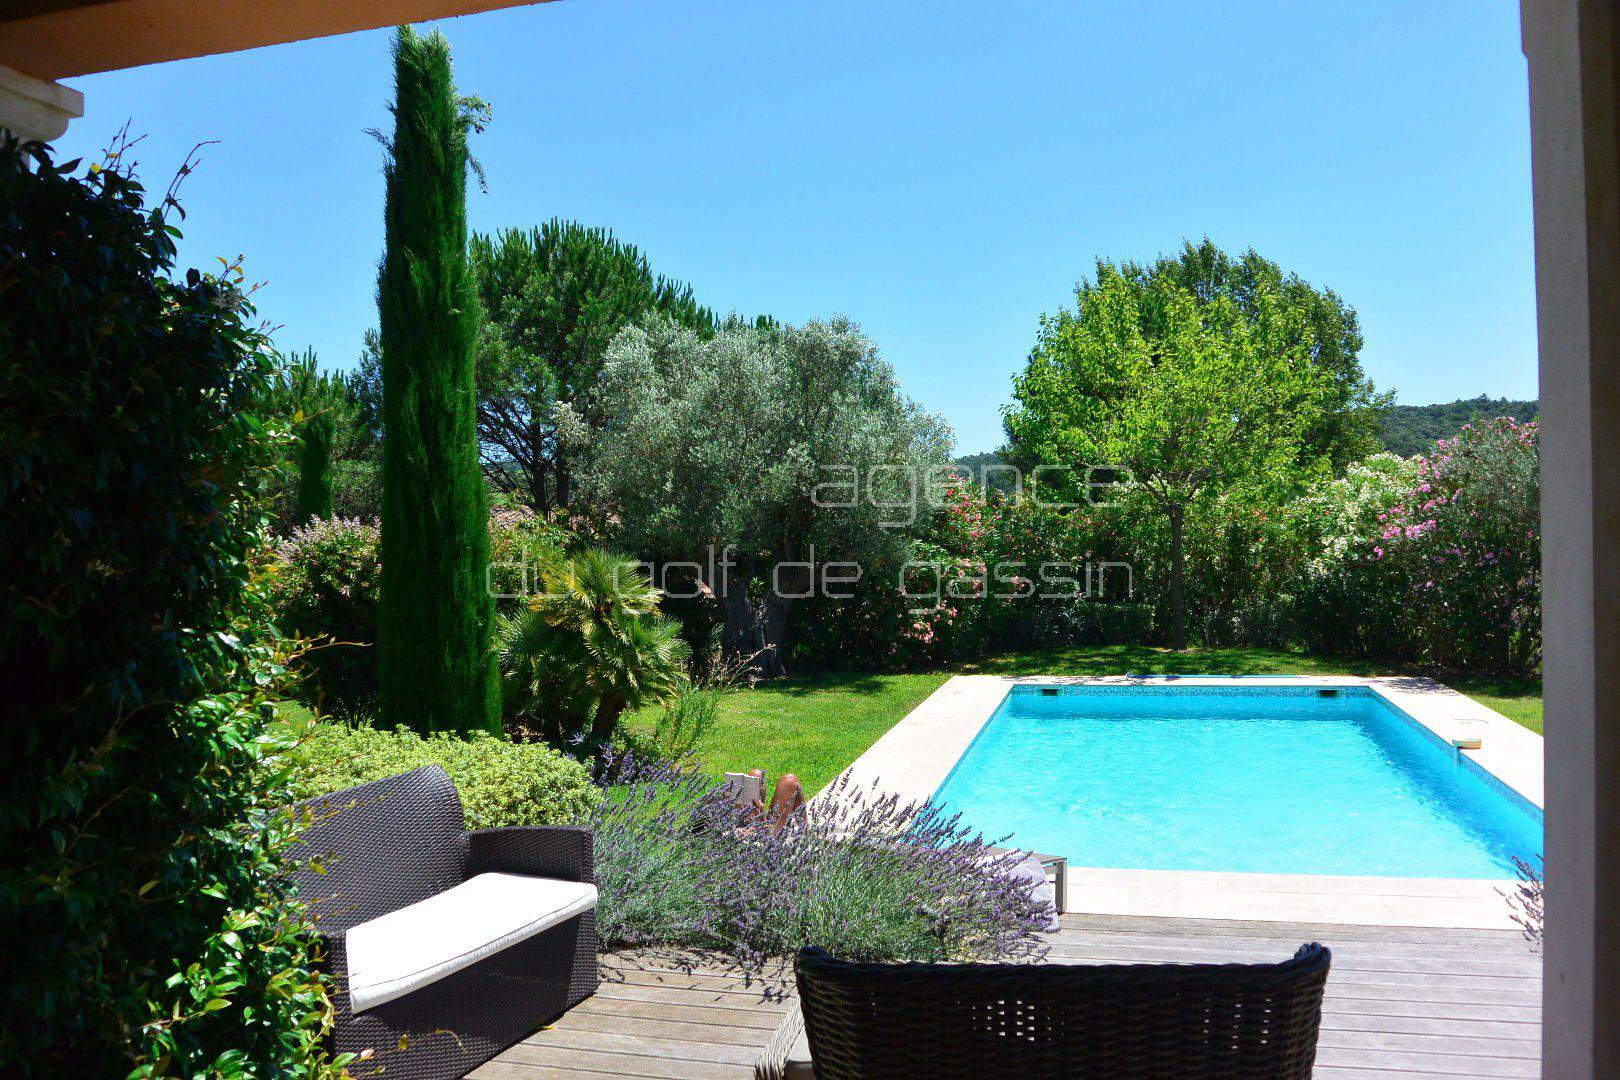 On the private domain of the Gulf of Saint-Tropez Gassin.